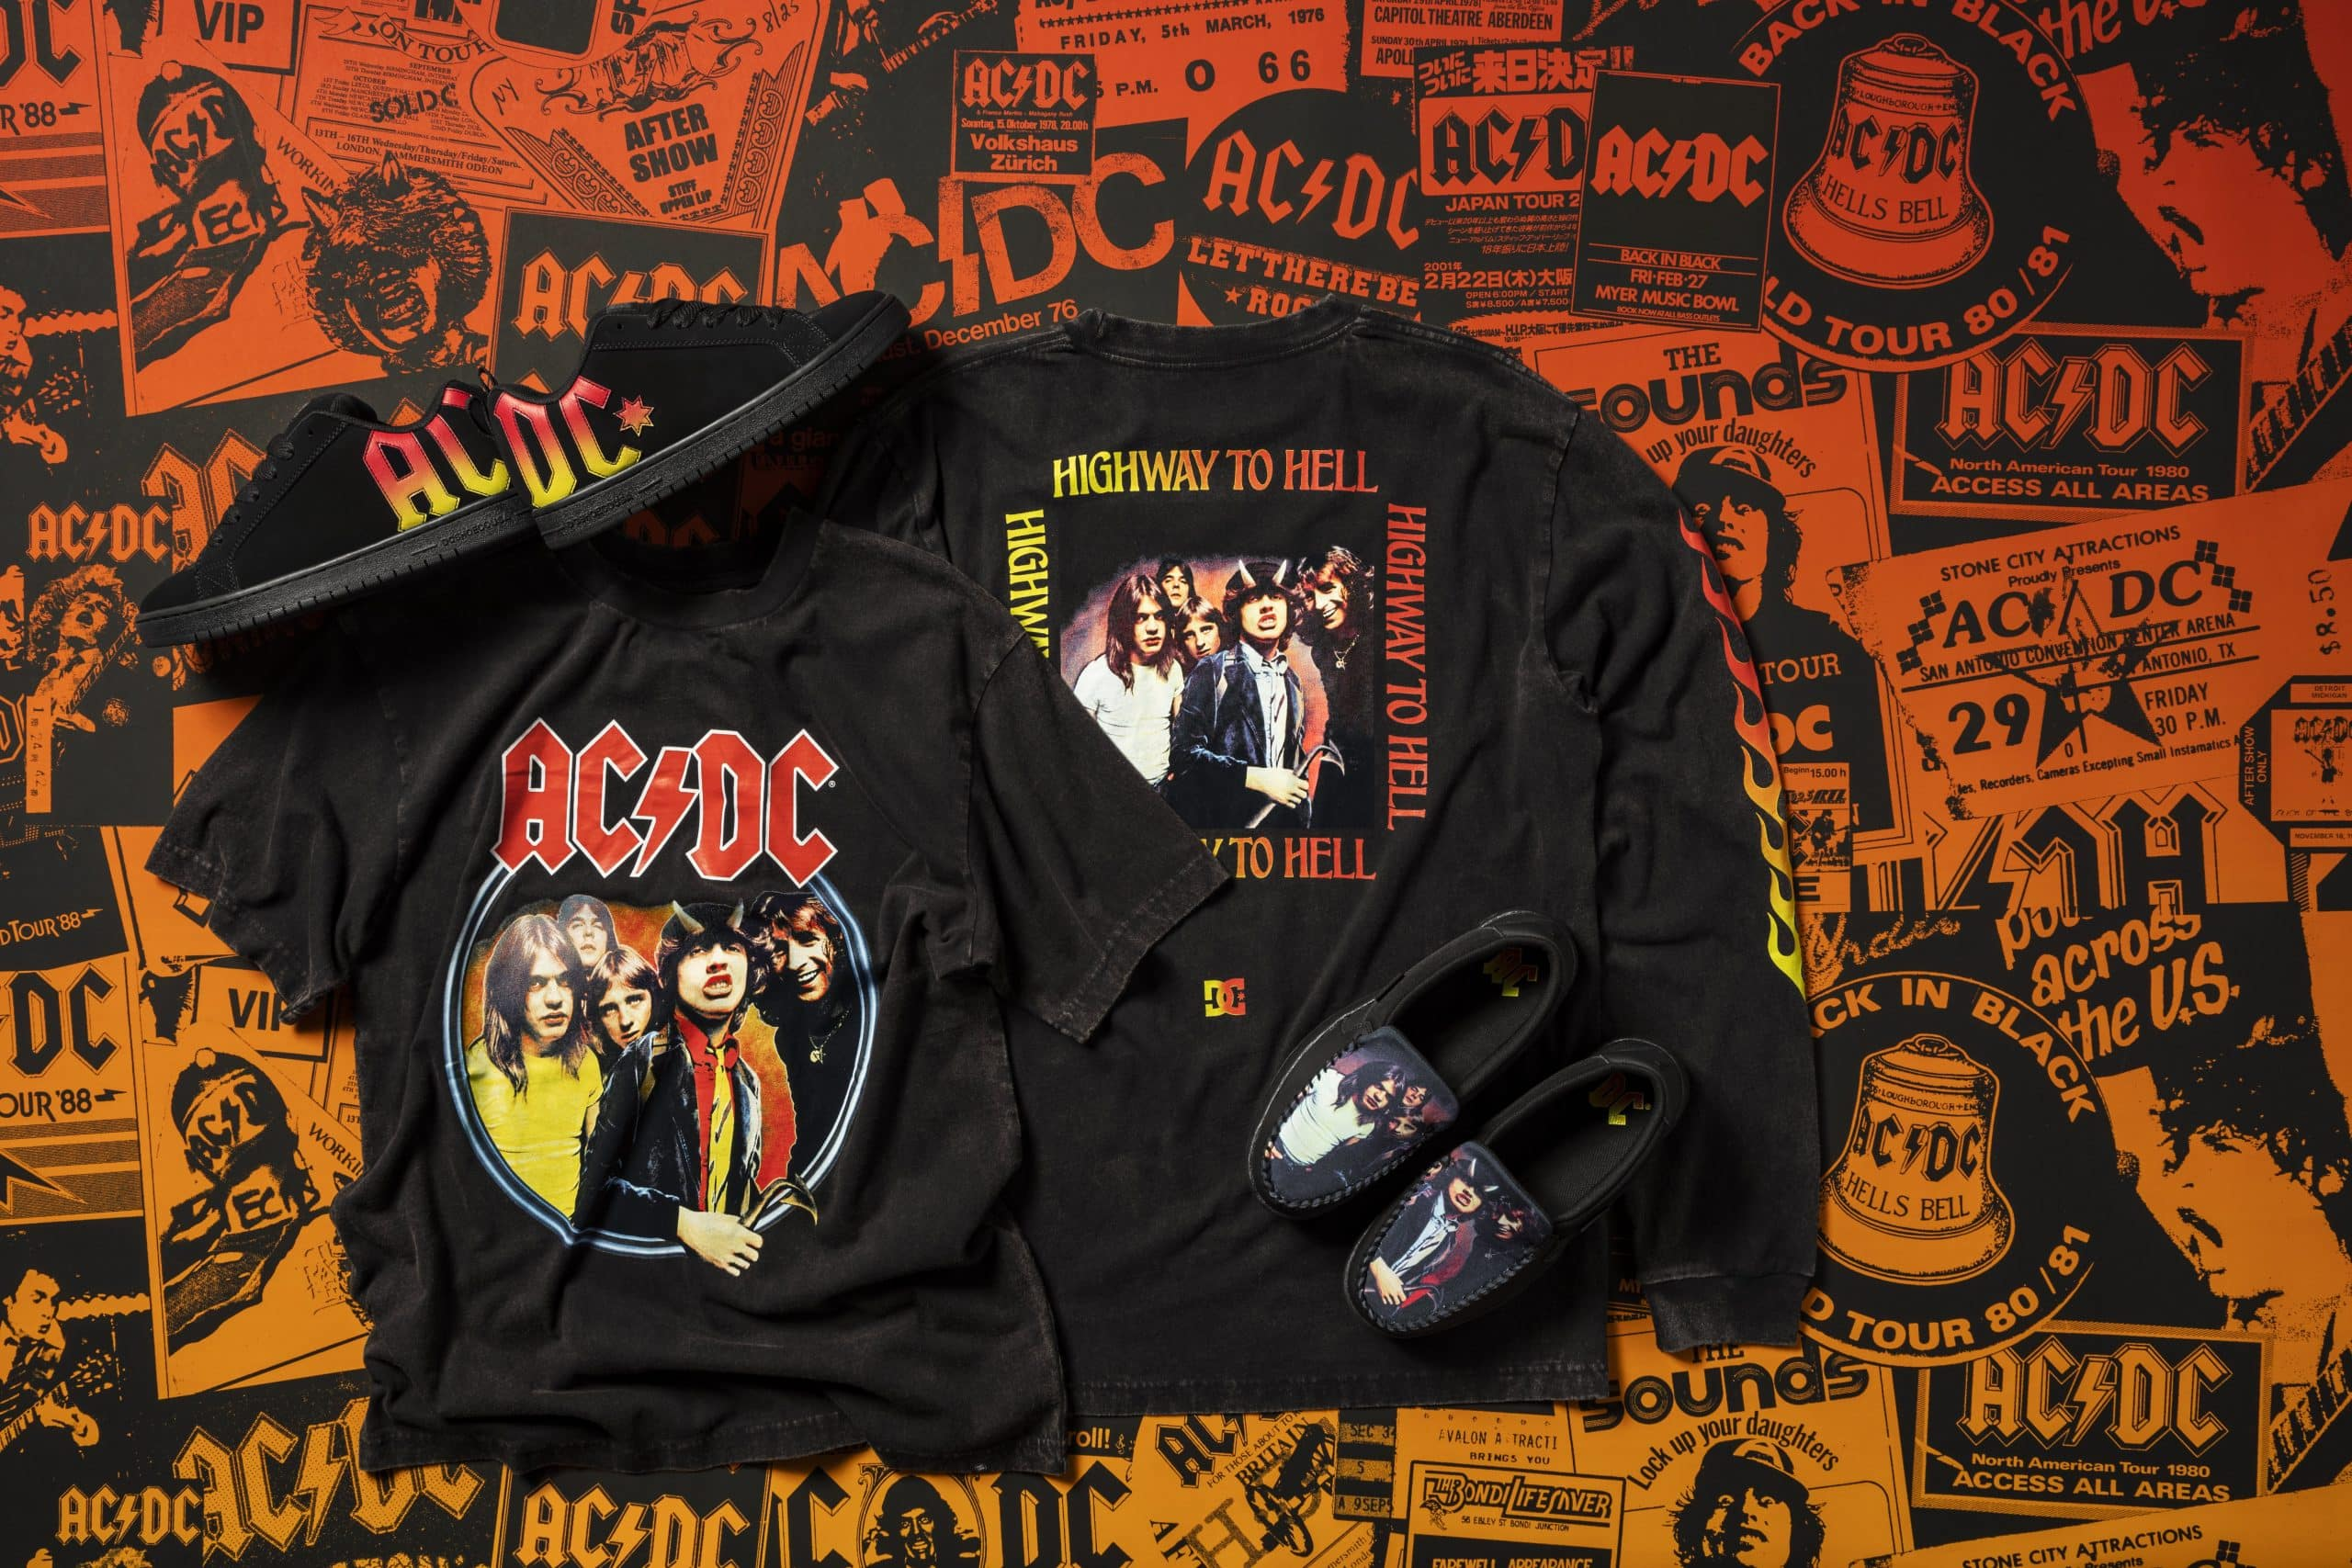 DC-062620-ACDC_Product_PrintOut_BTY_013013